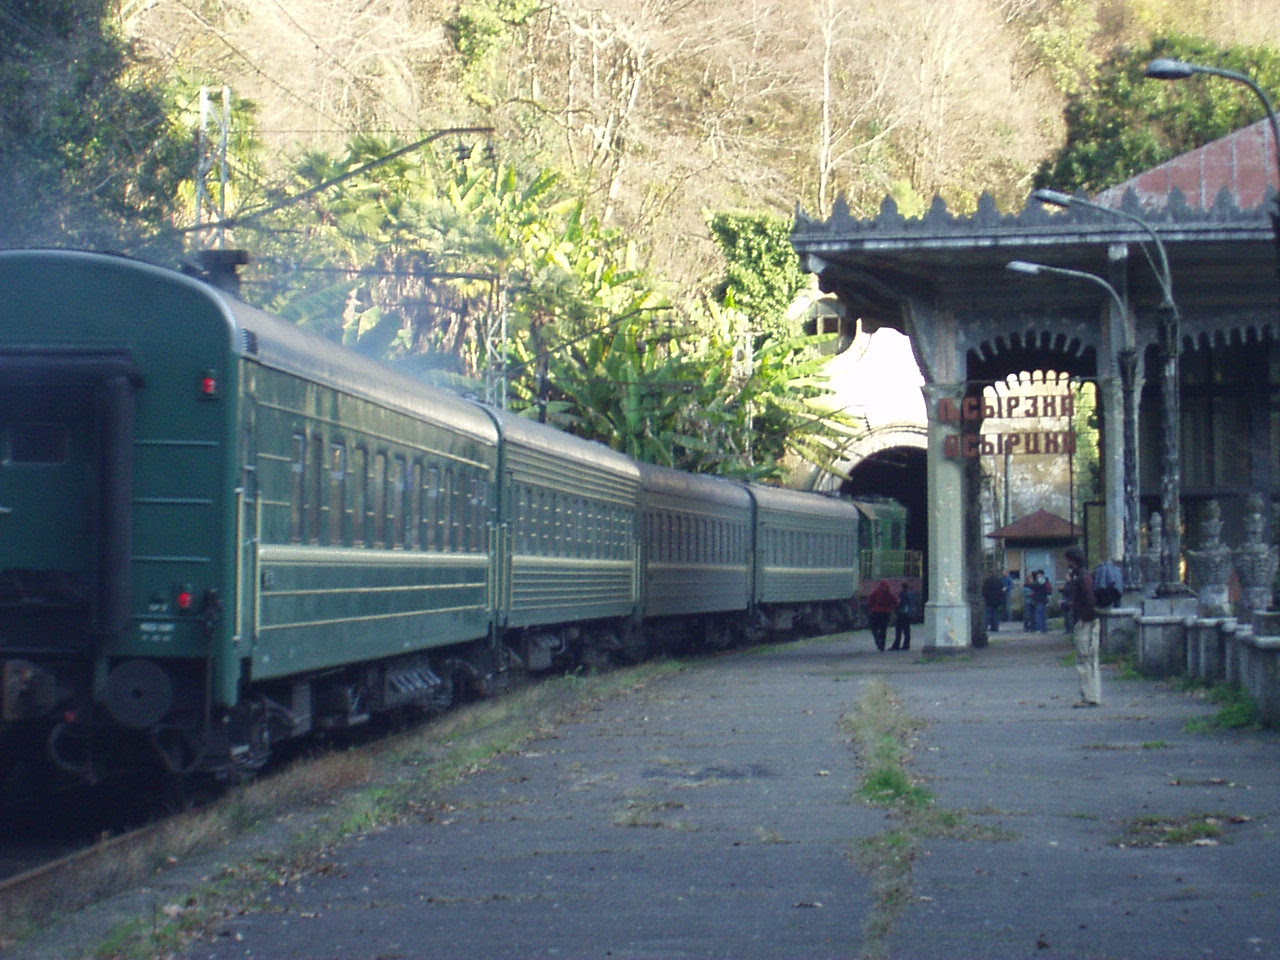 http://upload.wikimedia.org/wikipedia/commons/c/c6/Passenger_train_in_Psyrtskha,_Abkhazia.JPG